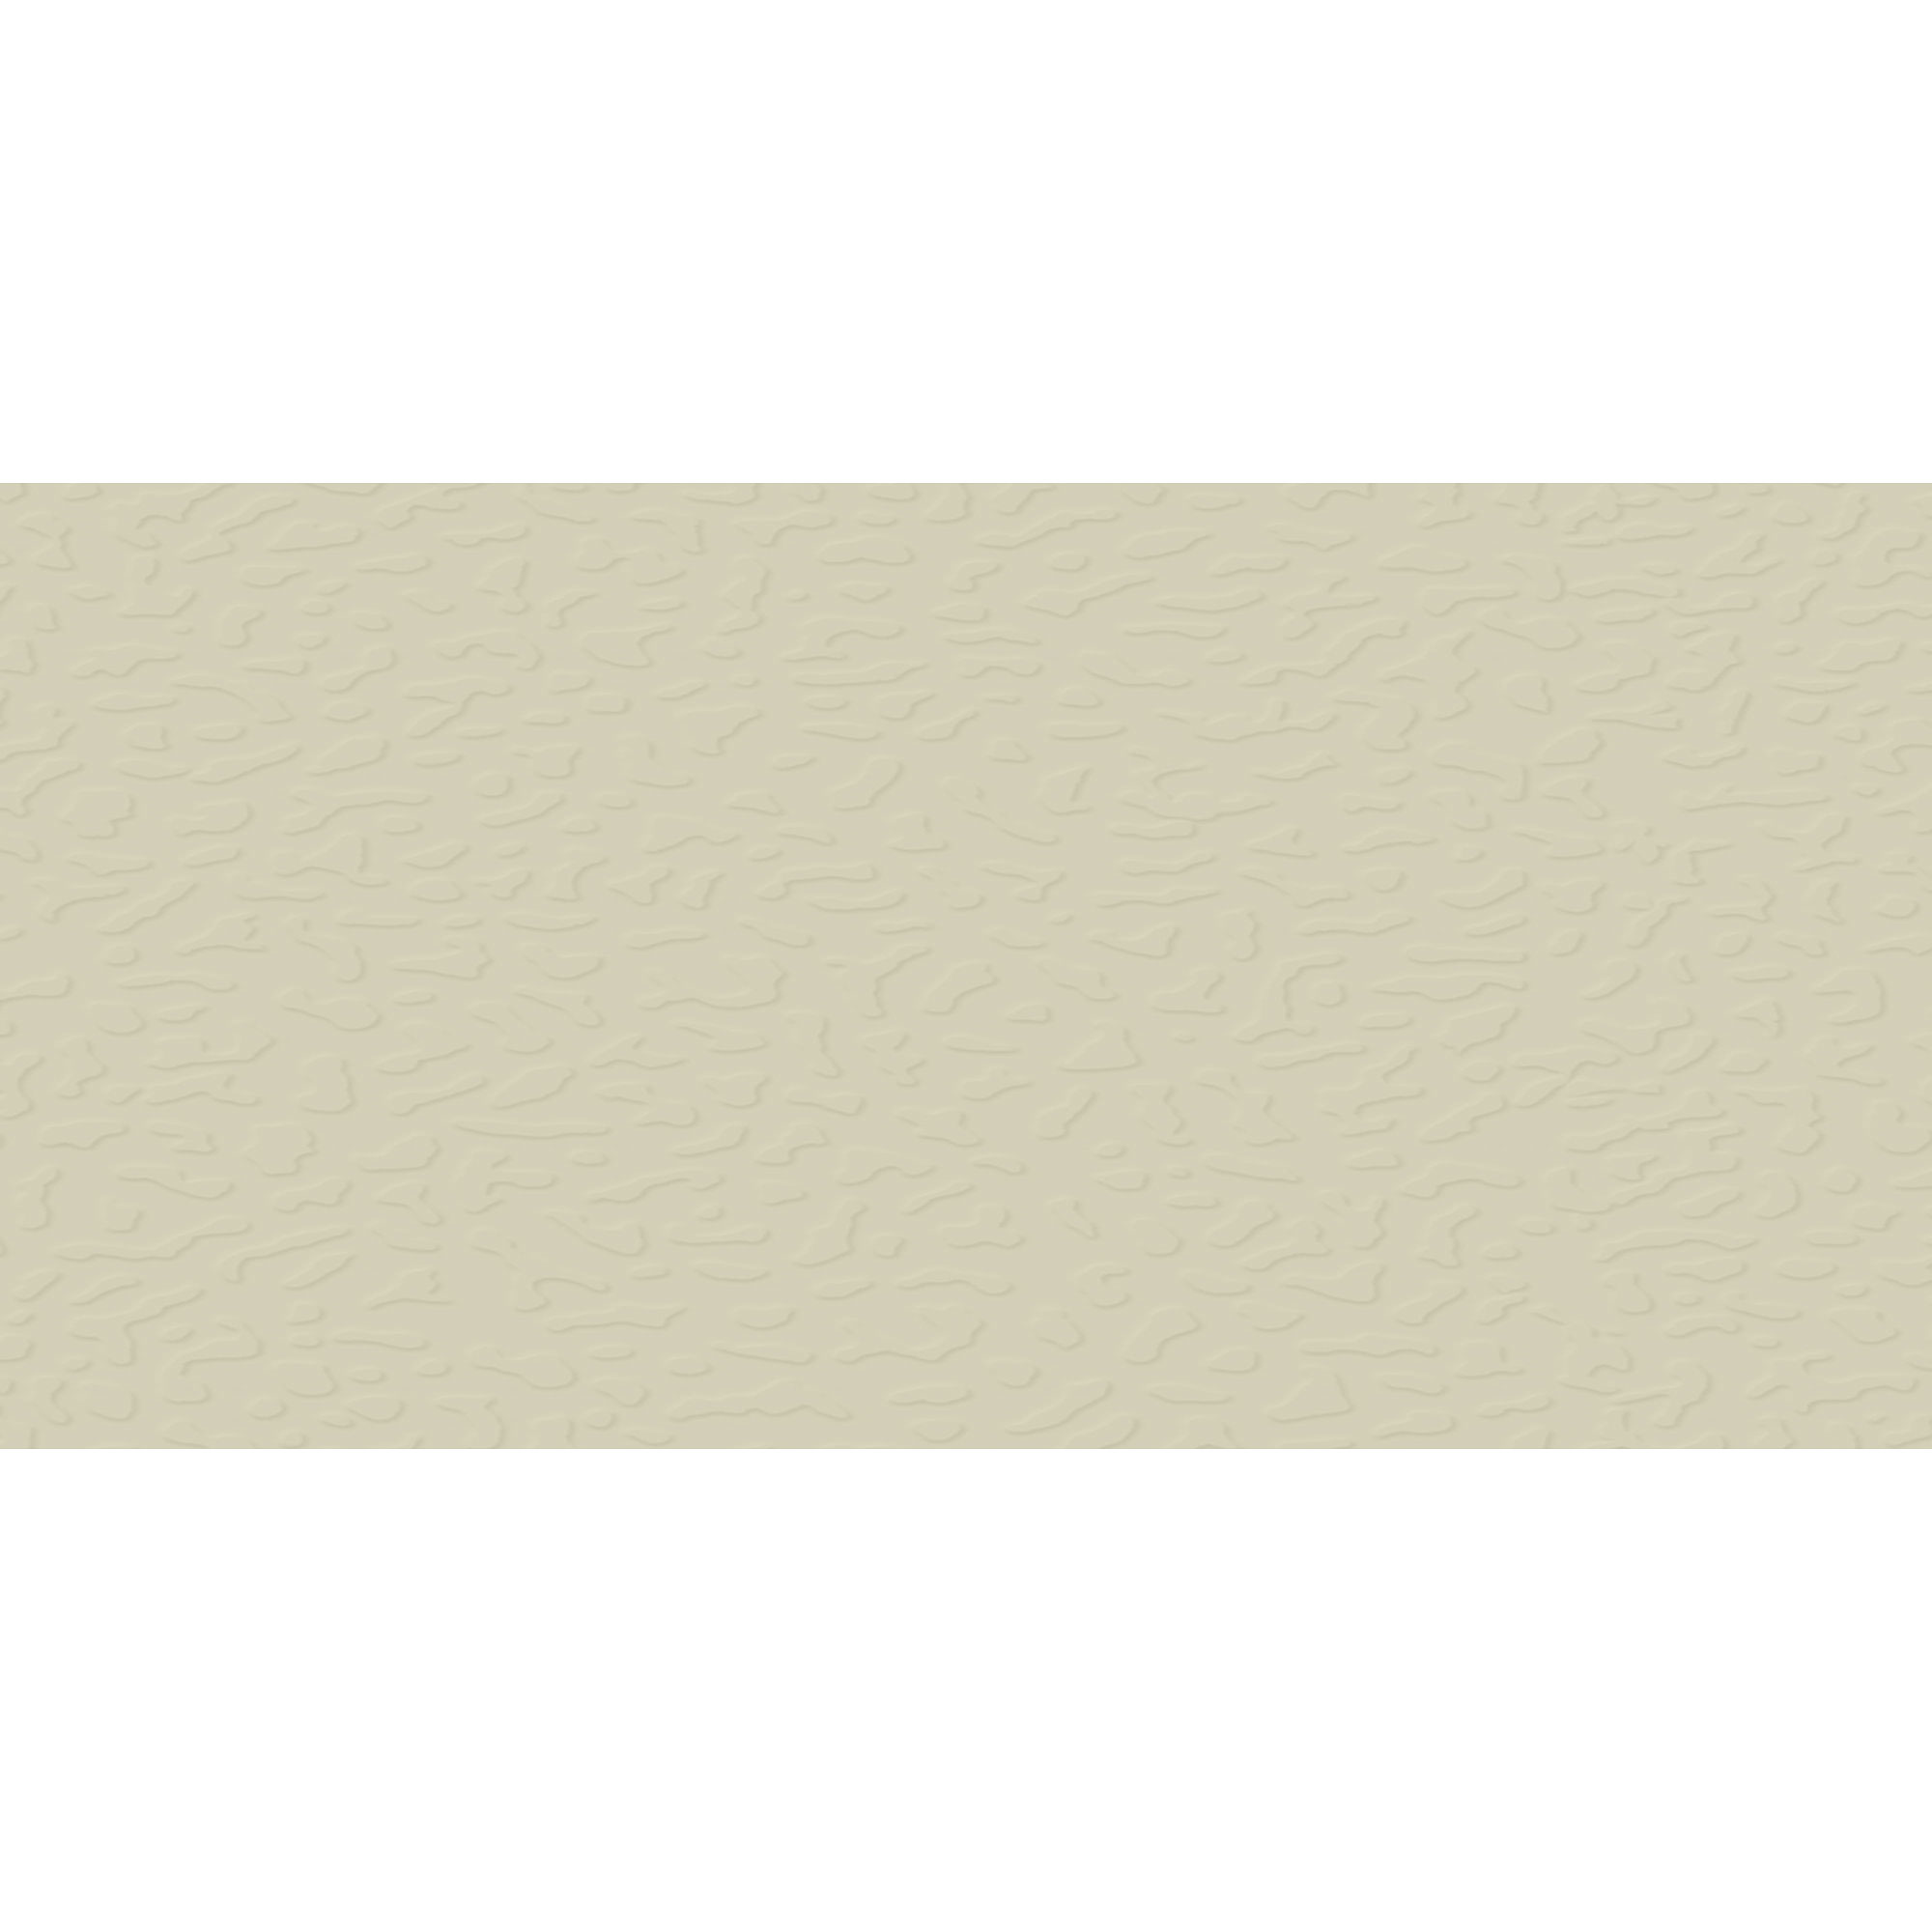 Roppe Designers Choice Textured 6 x 12 Bisque